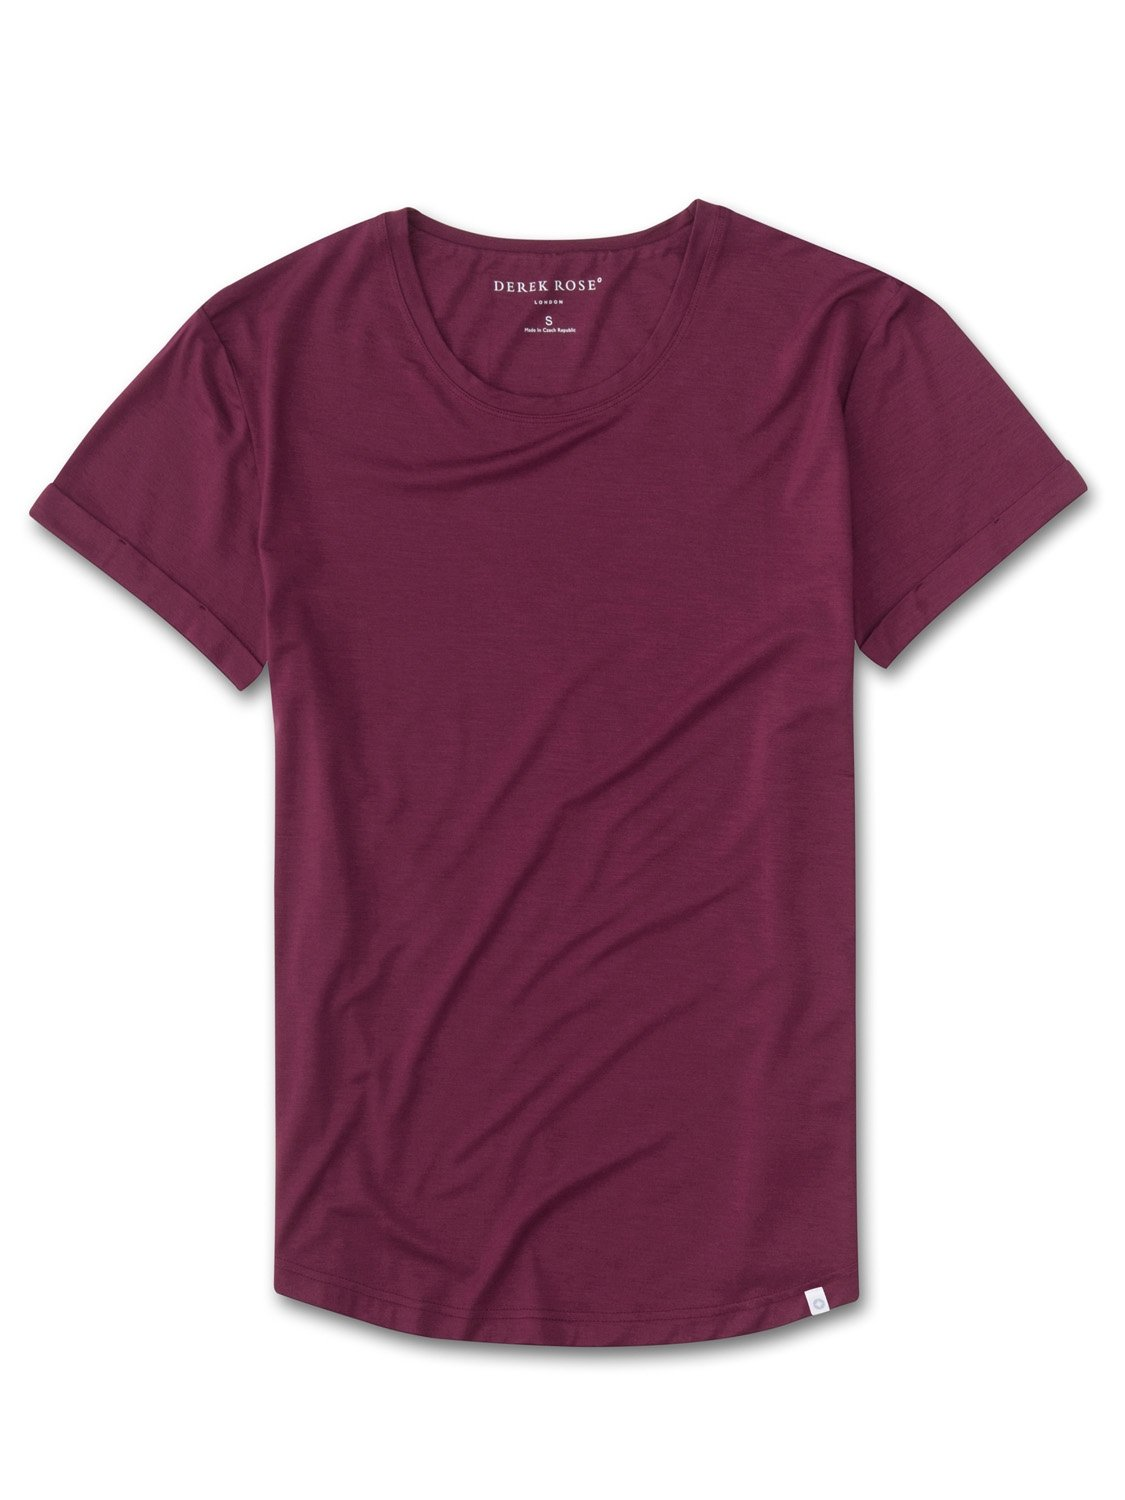 Women's Leisure T-Shirt Carla 4 Micro Modal Stretch Burgundy